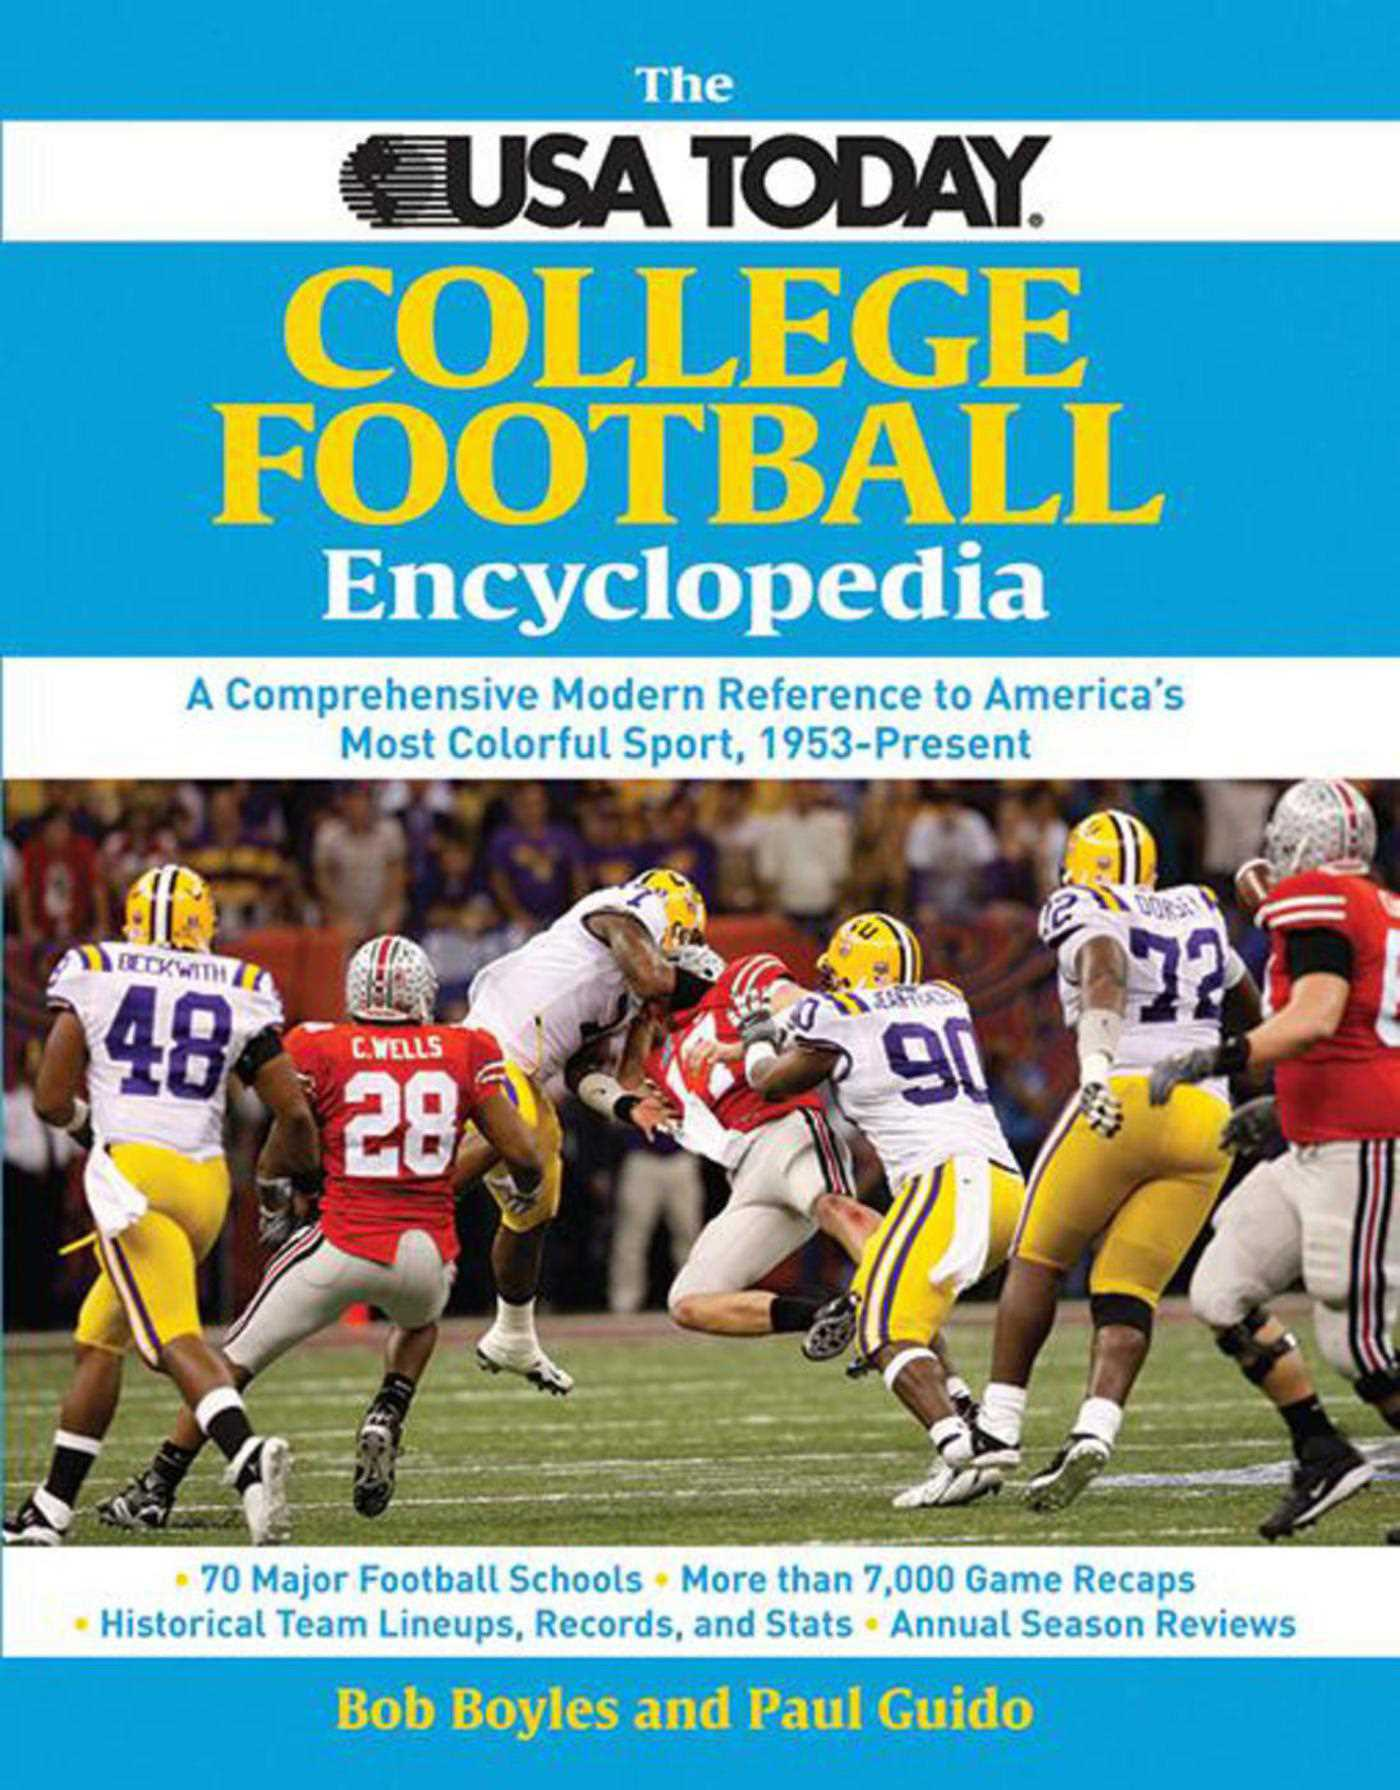 The USA TODAY College Football Encyclopedia 2008-2009 | Book by Bob